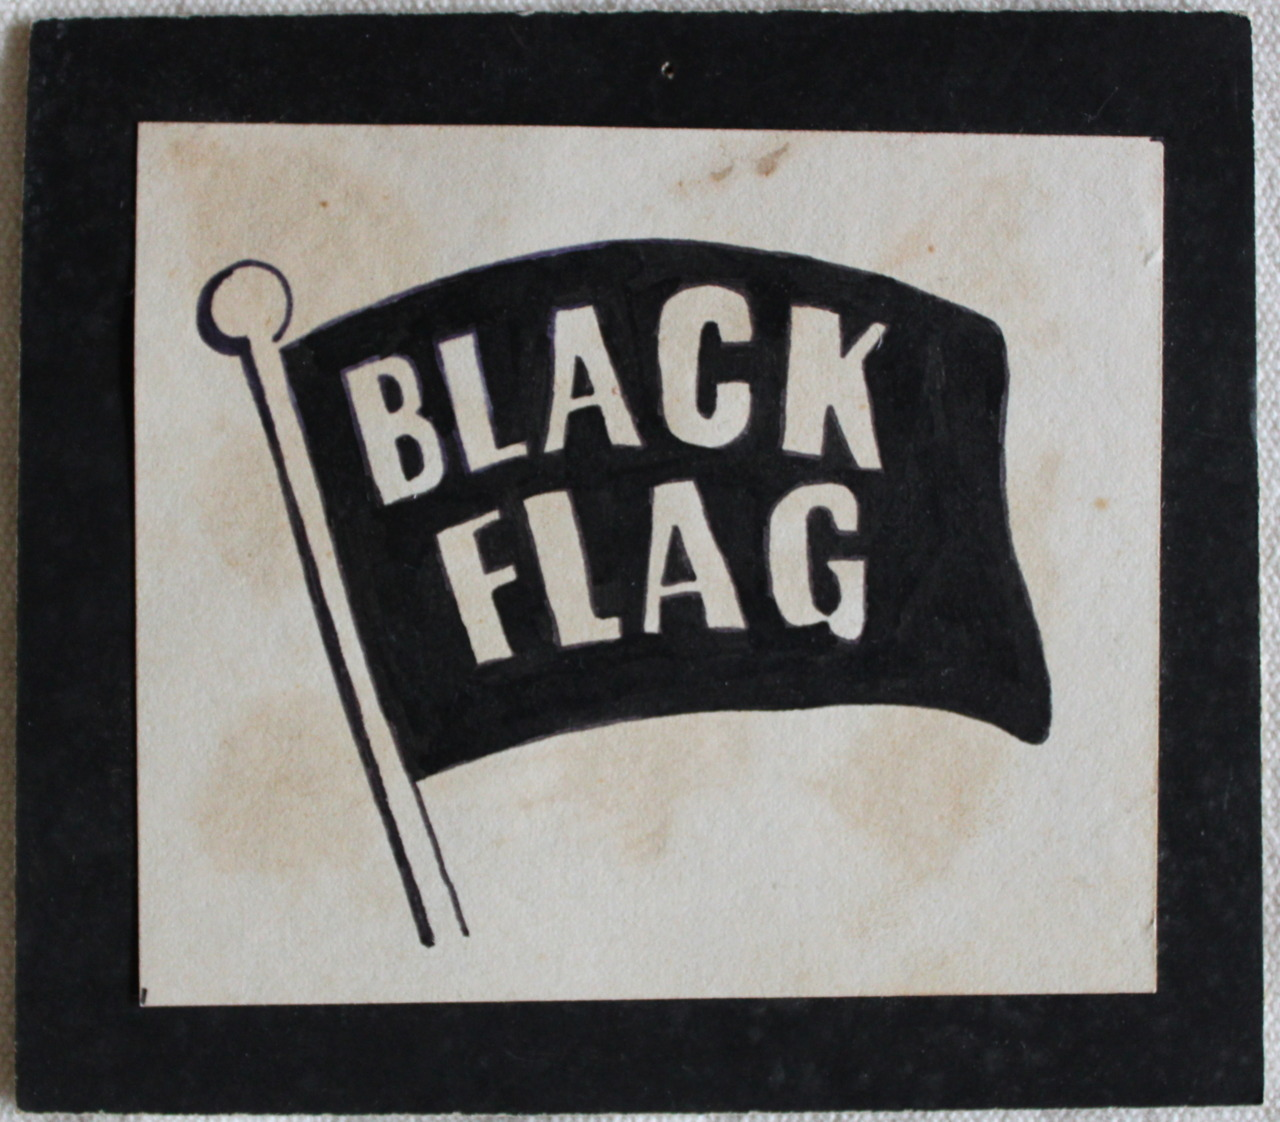 "FROM BMX TO BLACK FLAG  LOGO DRAWING FROM JUNIOR HIGH TACOMA 1981/2 In my pre-teen and adolescent years I loved drawing logos. I vaguely remember drawing this Black Flag logo for some art project in Junior High  (based on that of the insecticide of the same name, it was almost as popular a version among punks at the time as the classic ""four bars"" ). This would've been in late '81 or early '82. It's kind of surprising I didn't go into graphic design considering my early obsessive fixation with logos. If I had I probably would've ended up earning some money from making art. Now wouldn't that have been awful?  Before discovering punk in the early 80's I was a huge BMX enthusiast. I competed in races around the Seattle/Tacoma area in the late 70's but as much as I liked riding and racing I was always just as interested in the look and feel of BMX: the bikes, magazines, and gear.  Oh, and by the way, for all you whipper-snappers under the age of thirty-something who might be reading: In the BMX era I'm talking about racing in races was the only game in town. ""Freestyle"" at the time was a term known only in the world of competitive swimming and, speaking of swimming, I didn't see anyone riding a BMX bike in a swimming pool until I moved to So. Cal. years later. I can't recall ever even seeing photos of anyone doing that in the BMX magazines in the late 70's/early 80's either. Of course in Washington State there are no pools.So aside from riding around the neighborhood or jumping your bike over a hastily erected wedge of a ramp to catch air, racing is what you did.  Though I lived in Washington I had a decent grasp of what was happening in So. Cal. because I subscribed to and carefully studied publications like BMX Action and BMX Plus! almost obsessively. I'd spend hours with felt tipped pens trying to draw perfect reproductions of the logos of my favorite brands of bikes and components. Brands like Cook Bros. Racing, Diamondback, Torker, Mongoose, JMC, Hutch, Kuwahara…the list goes on and on. There was something magical about the logos and all they symbolized to me. They represented something that was rare, expensive, and very specialized. In that era where I lived you were forced to travel to often out of the way places in order to get to the specialty bike shops that carried the good parts by the right makers. BMX was a semi-underground sport that you had to seek out if you wanted in. Like Black Flag and many other hardcore bands I would soon come to love and whose own logos I would soon be studying and drawing on my clothes, most of the BMX manufacturers and racers I admired hailed from the promised land of Southern California. Racers like Stu Thomsen, Anthony Sewell, and Harry Leary to name a few. They raced at tracks with exotic-sounding names like Azusa, Devonshire Downs and Soledad Sands.  I used to imagine what it was like at these places and what these racers must've looked like wearing the graphic uniforms of their big factory teams, flying around the track, catching air, and crossing the finish line. It all seemed so far away, so sunny, and spectacular to me living as I did in the rainy, grey Pacific Northwest. As much as I dug the look and feel of the sport I also really liked that BMX felt like it was my thing. It wasn't something everyone else knew about. Going to a race with my mom and my stepdad or with my dad and my brother somewhere outside of town on the weekend expanded my world because the races drew kids like me from all over the area. Only a couple times did I run into another kid from my school at one of these races and I didn't especially like it when I did.  What's he doing here? this is my world. Of course it wasn't. It was for anyone who wanted to be a part of it. Just like punk rock. BMX wasn't a school sport and it wasn't a team sport like little league or football, neither of which I had any interest in at all. It was an individual activity that took time, some money, skill, and technical knowledge if you wanted to participate in it. All these things took a lot of work and effort for me to acquire them. There were no coaches involved and there was nobody to tell you how to do it, which meant you had to figure it out and do it yourself.  I found this self-directed aspect of it to be personally empowering and it gave me a sense of belonging to something cool. I didn't analyze it or think about it that way at the time, I was too busy having fun. Looking back though, I can see that BMX gave me a sense of self-esteem of the sort that all kids need, and hopefully find, if they are to have the confidence to survive and thrive in the wider landscape of adolescence. I think it might've been my experience in the world of BMX that later helped me find the guts to strike out into the uncharted and unsanctioned do-it-yourself world of Hardcore Punk. The parallels and overlaps between Punk Rock, skateboarding, and BMX are obvious and have been written about and documented widely. I don't have a whole lot to add to their history beyond my own personal experiences moving in, around, and through them. In the interest of giving credit where credit is due, I'd like to say that I know now how lucky I was to be blessed with parents and step-parents who openly supported, or simply didn't stand in the way of me following my interests back then. It couldn't have been easy watching me do all this potentially dangerous stuff. Their skilled and artful hands as my guardians and stewards helped instill in me a decent sense of judgement and helped keep me safe and motivated throughout my early years. Big thanks to them all. I still sometimes marvel when I see BMX on television or in The Olympics, or when I hear a punk song on the radio or see a Black Flag shirt for sale at the mall. I know I shouldn't be surprised, it's all so ubiquitous in the culture now. I can't help it though, I still marvel. Black Flag logo by me from my personal archive."